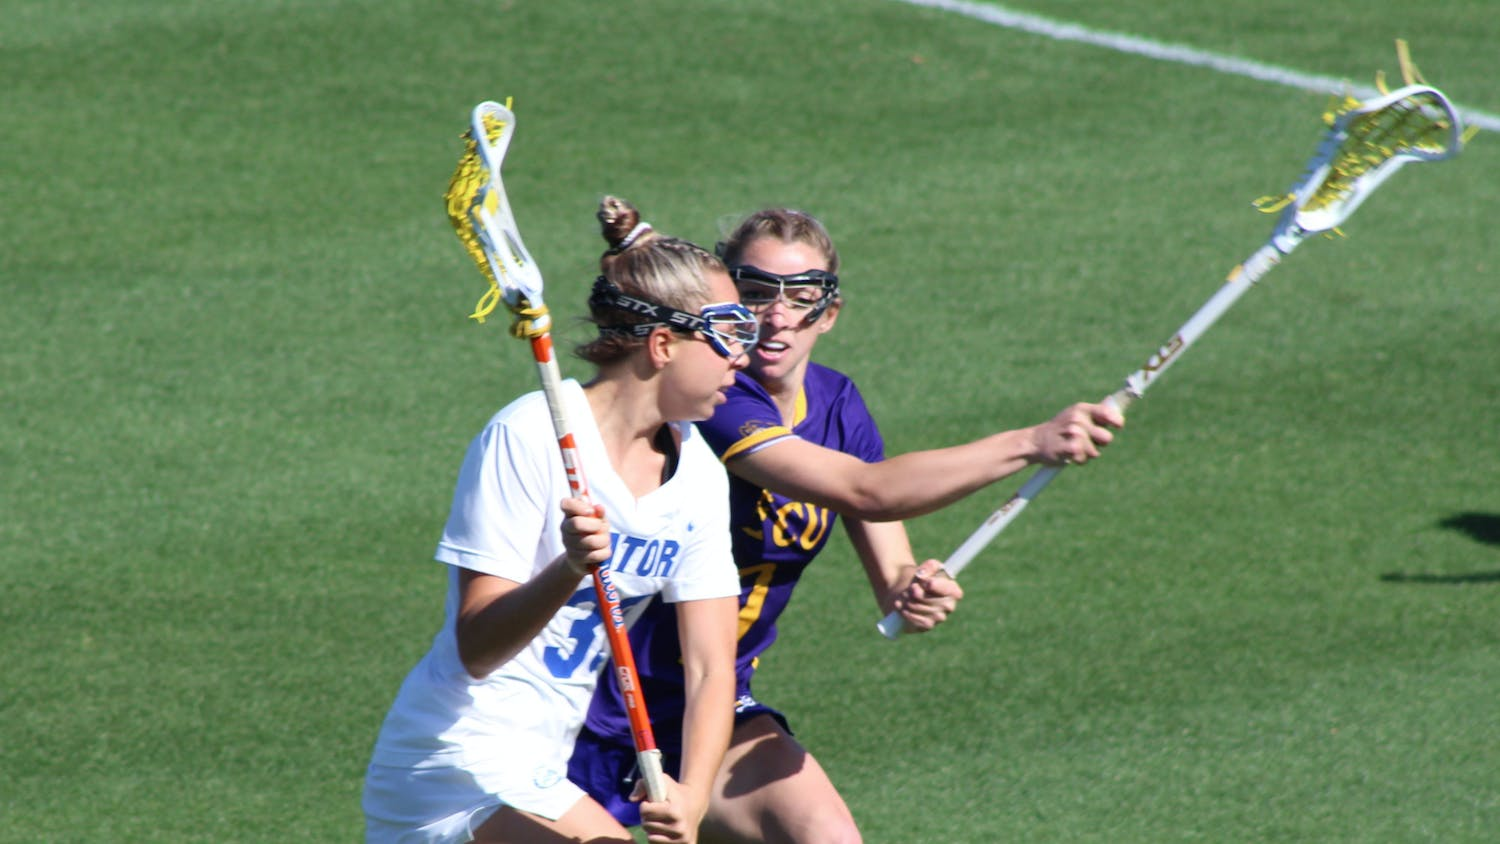 Florida defeated the Pirates 20-9 Thursday at the 'Diz. Photo from UF-East Carolina game April 1.